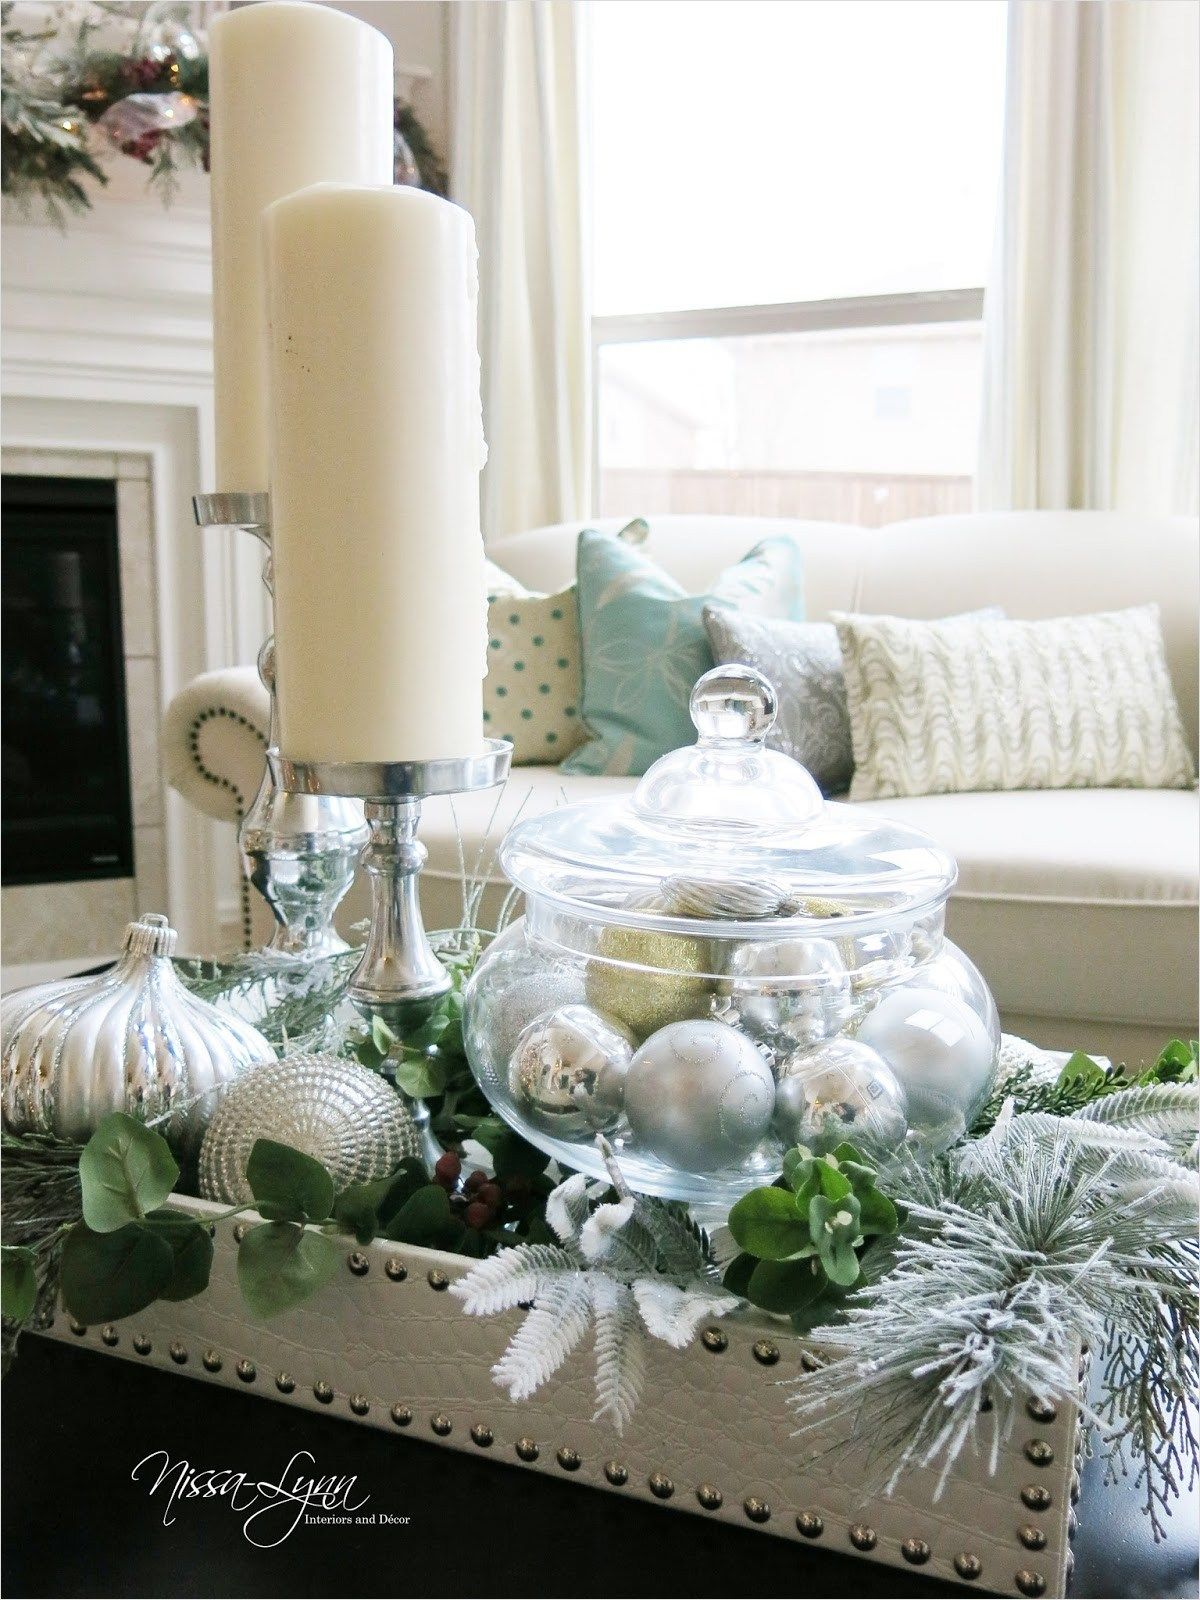 40 Best Coffee Table Christmas Decorations On A Budget Holiday Coffee Table Decor Christmas Coffee Table Decor Coffee Table Decor Tray